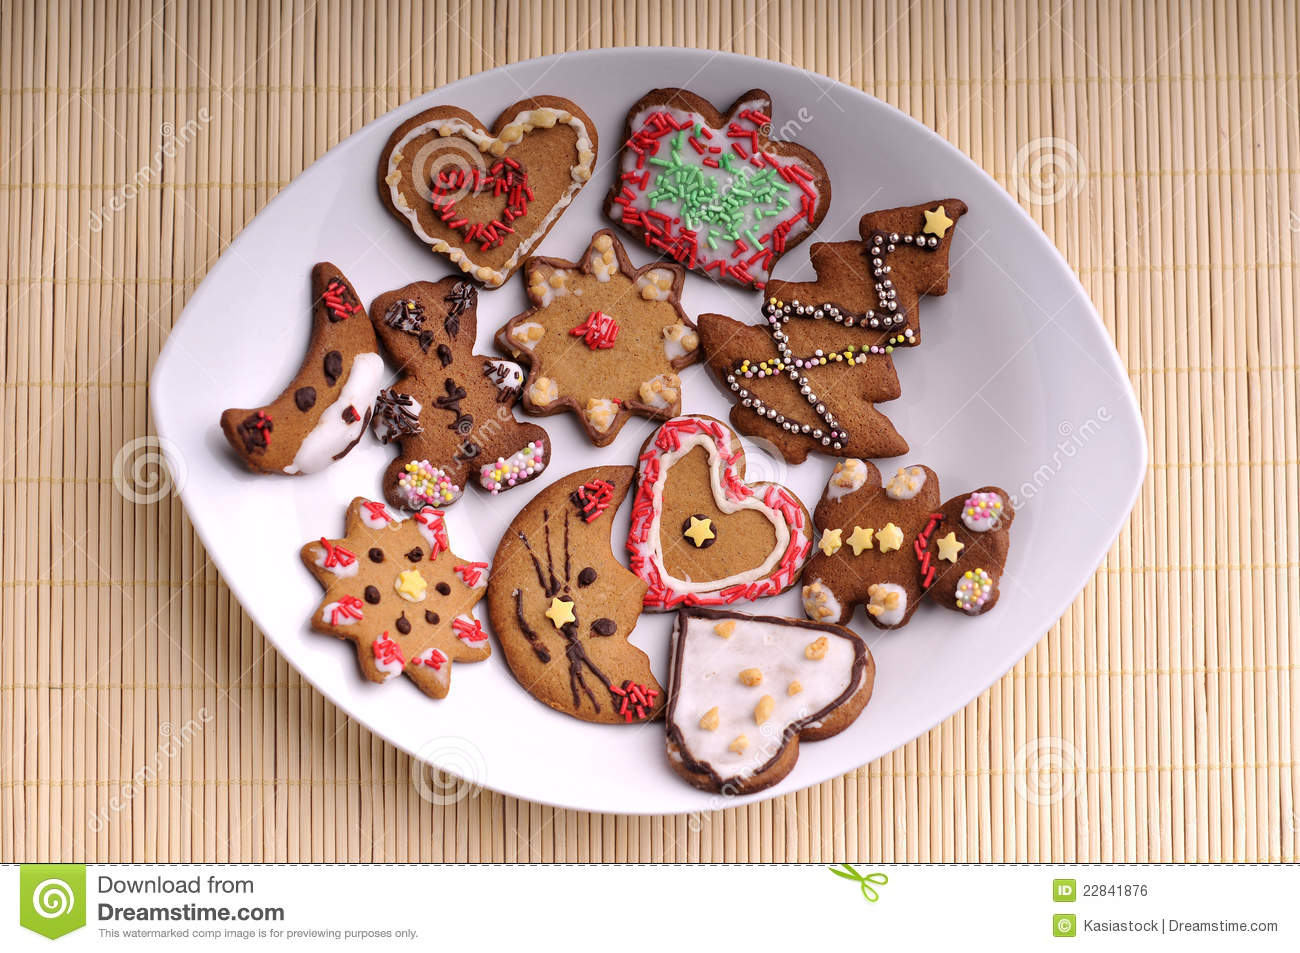 Christmas Cookies On A Plate - Top View Royalty Free Stock Image ...